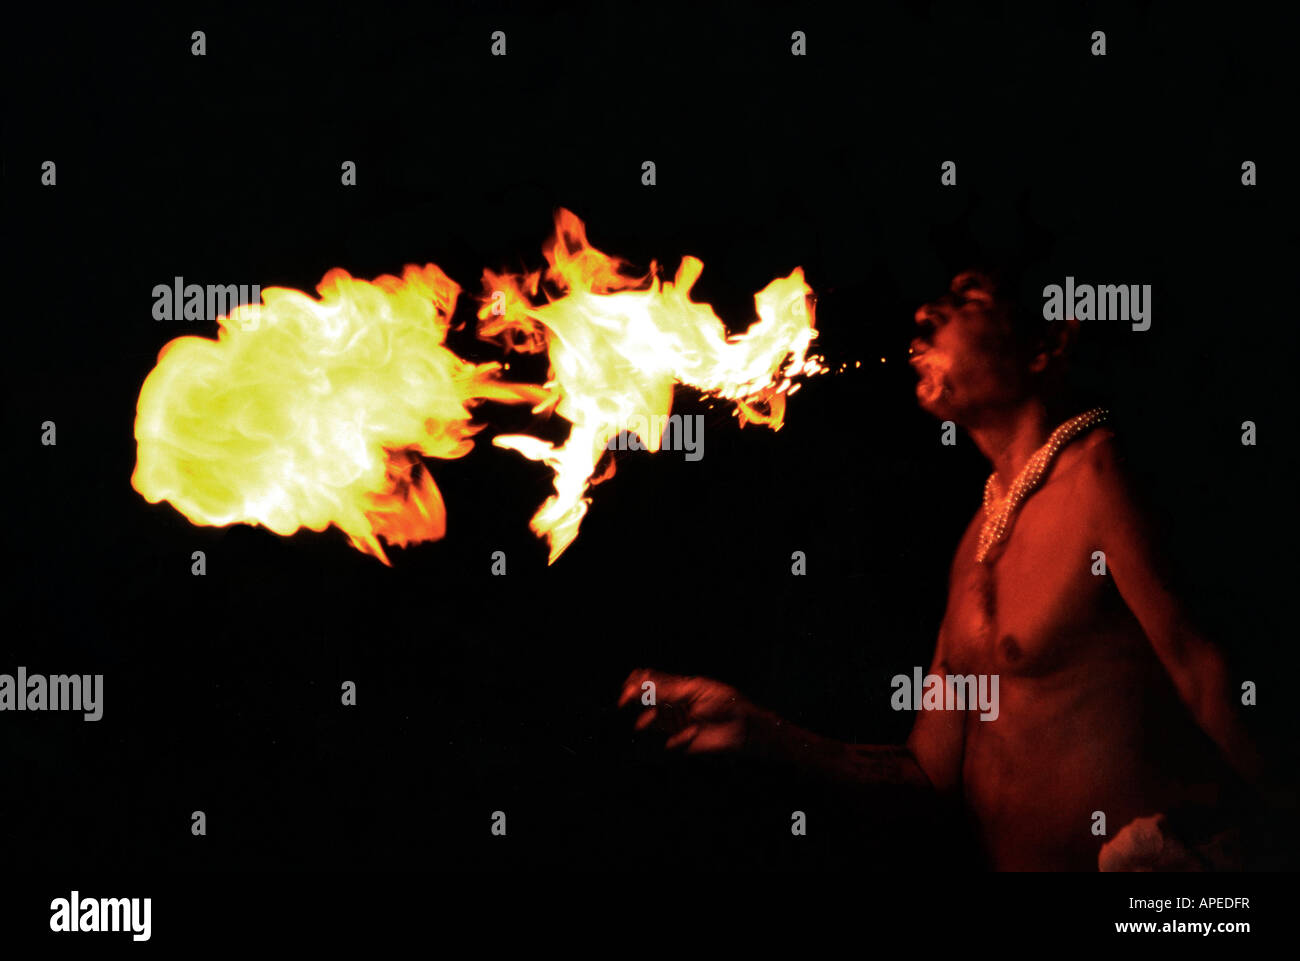 Man performing art of blowing fire out of his mouth - Stock Image